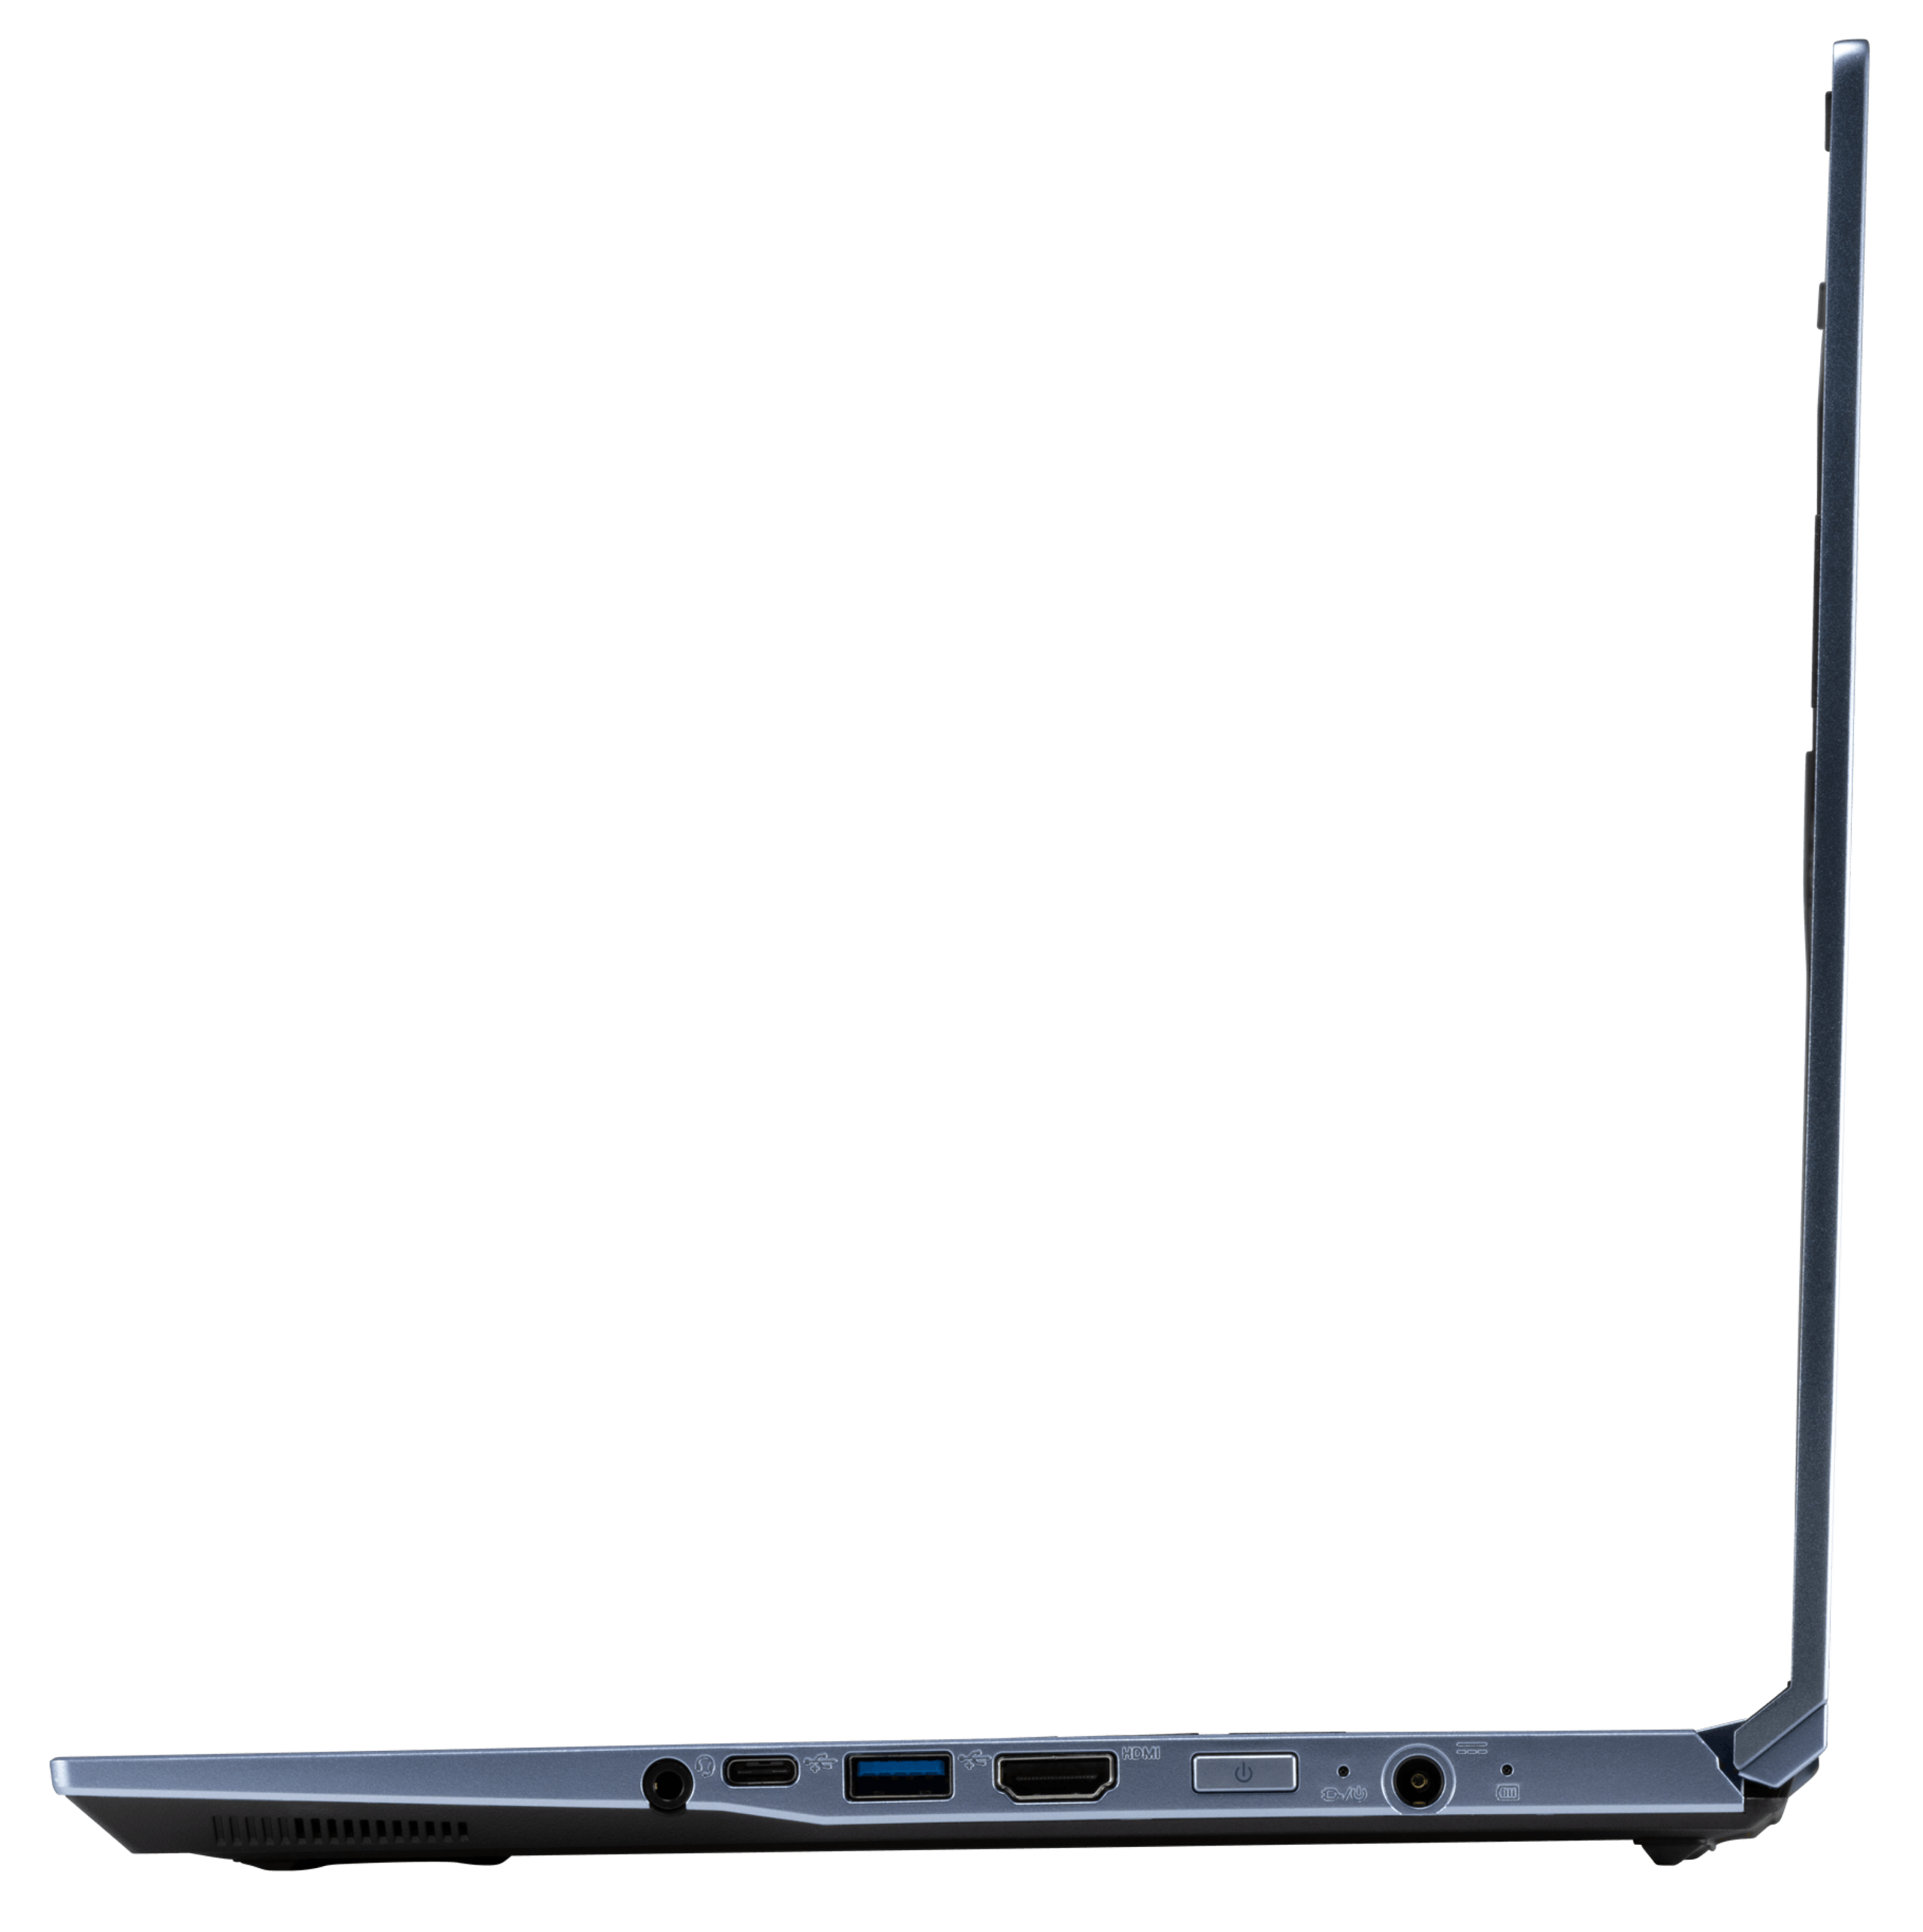 A right profile view of the Galago Pro laptop's ports, including audio jack, USB-C, USB, HDMI, and charging port.